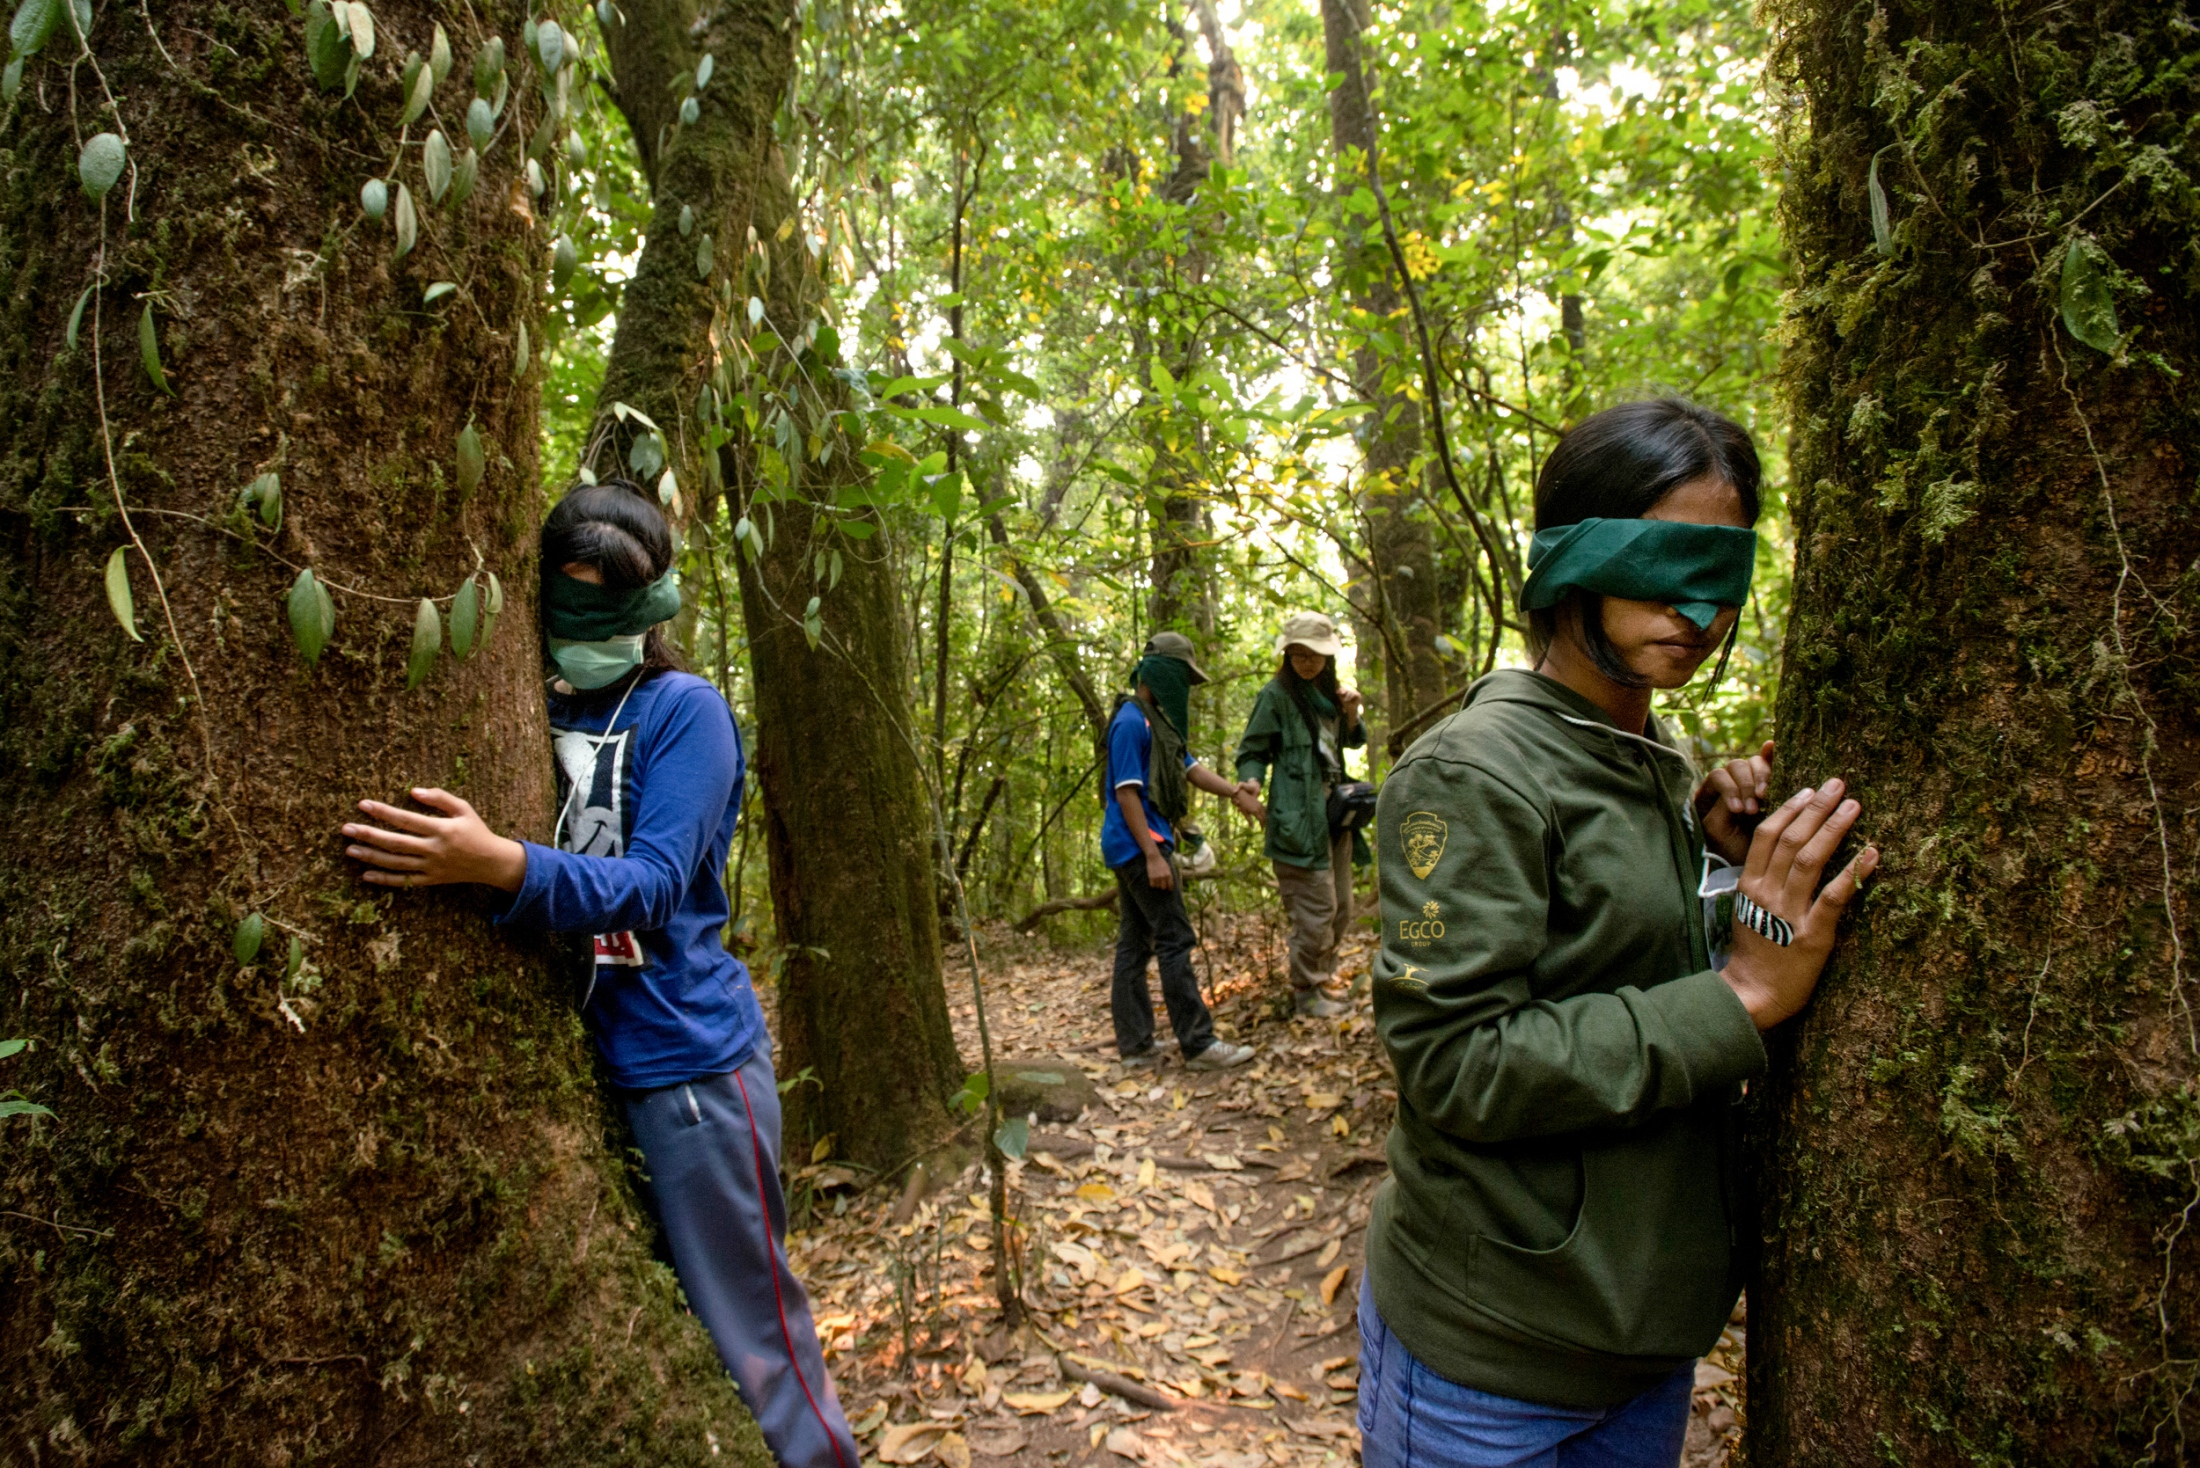 Young people use sensory activities to awaken their own sense of connection with nature. They have been implanted with the sustainable values of environmental savings by a group of environmental activists. March 24, 2014.